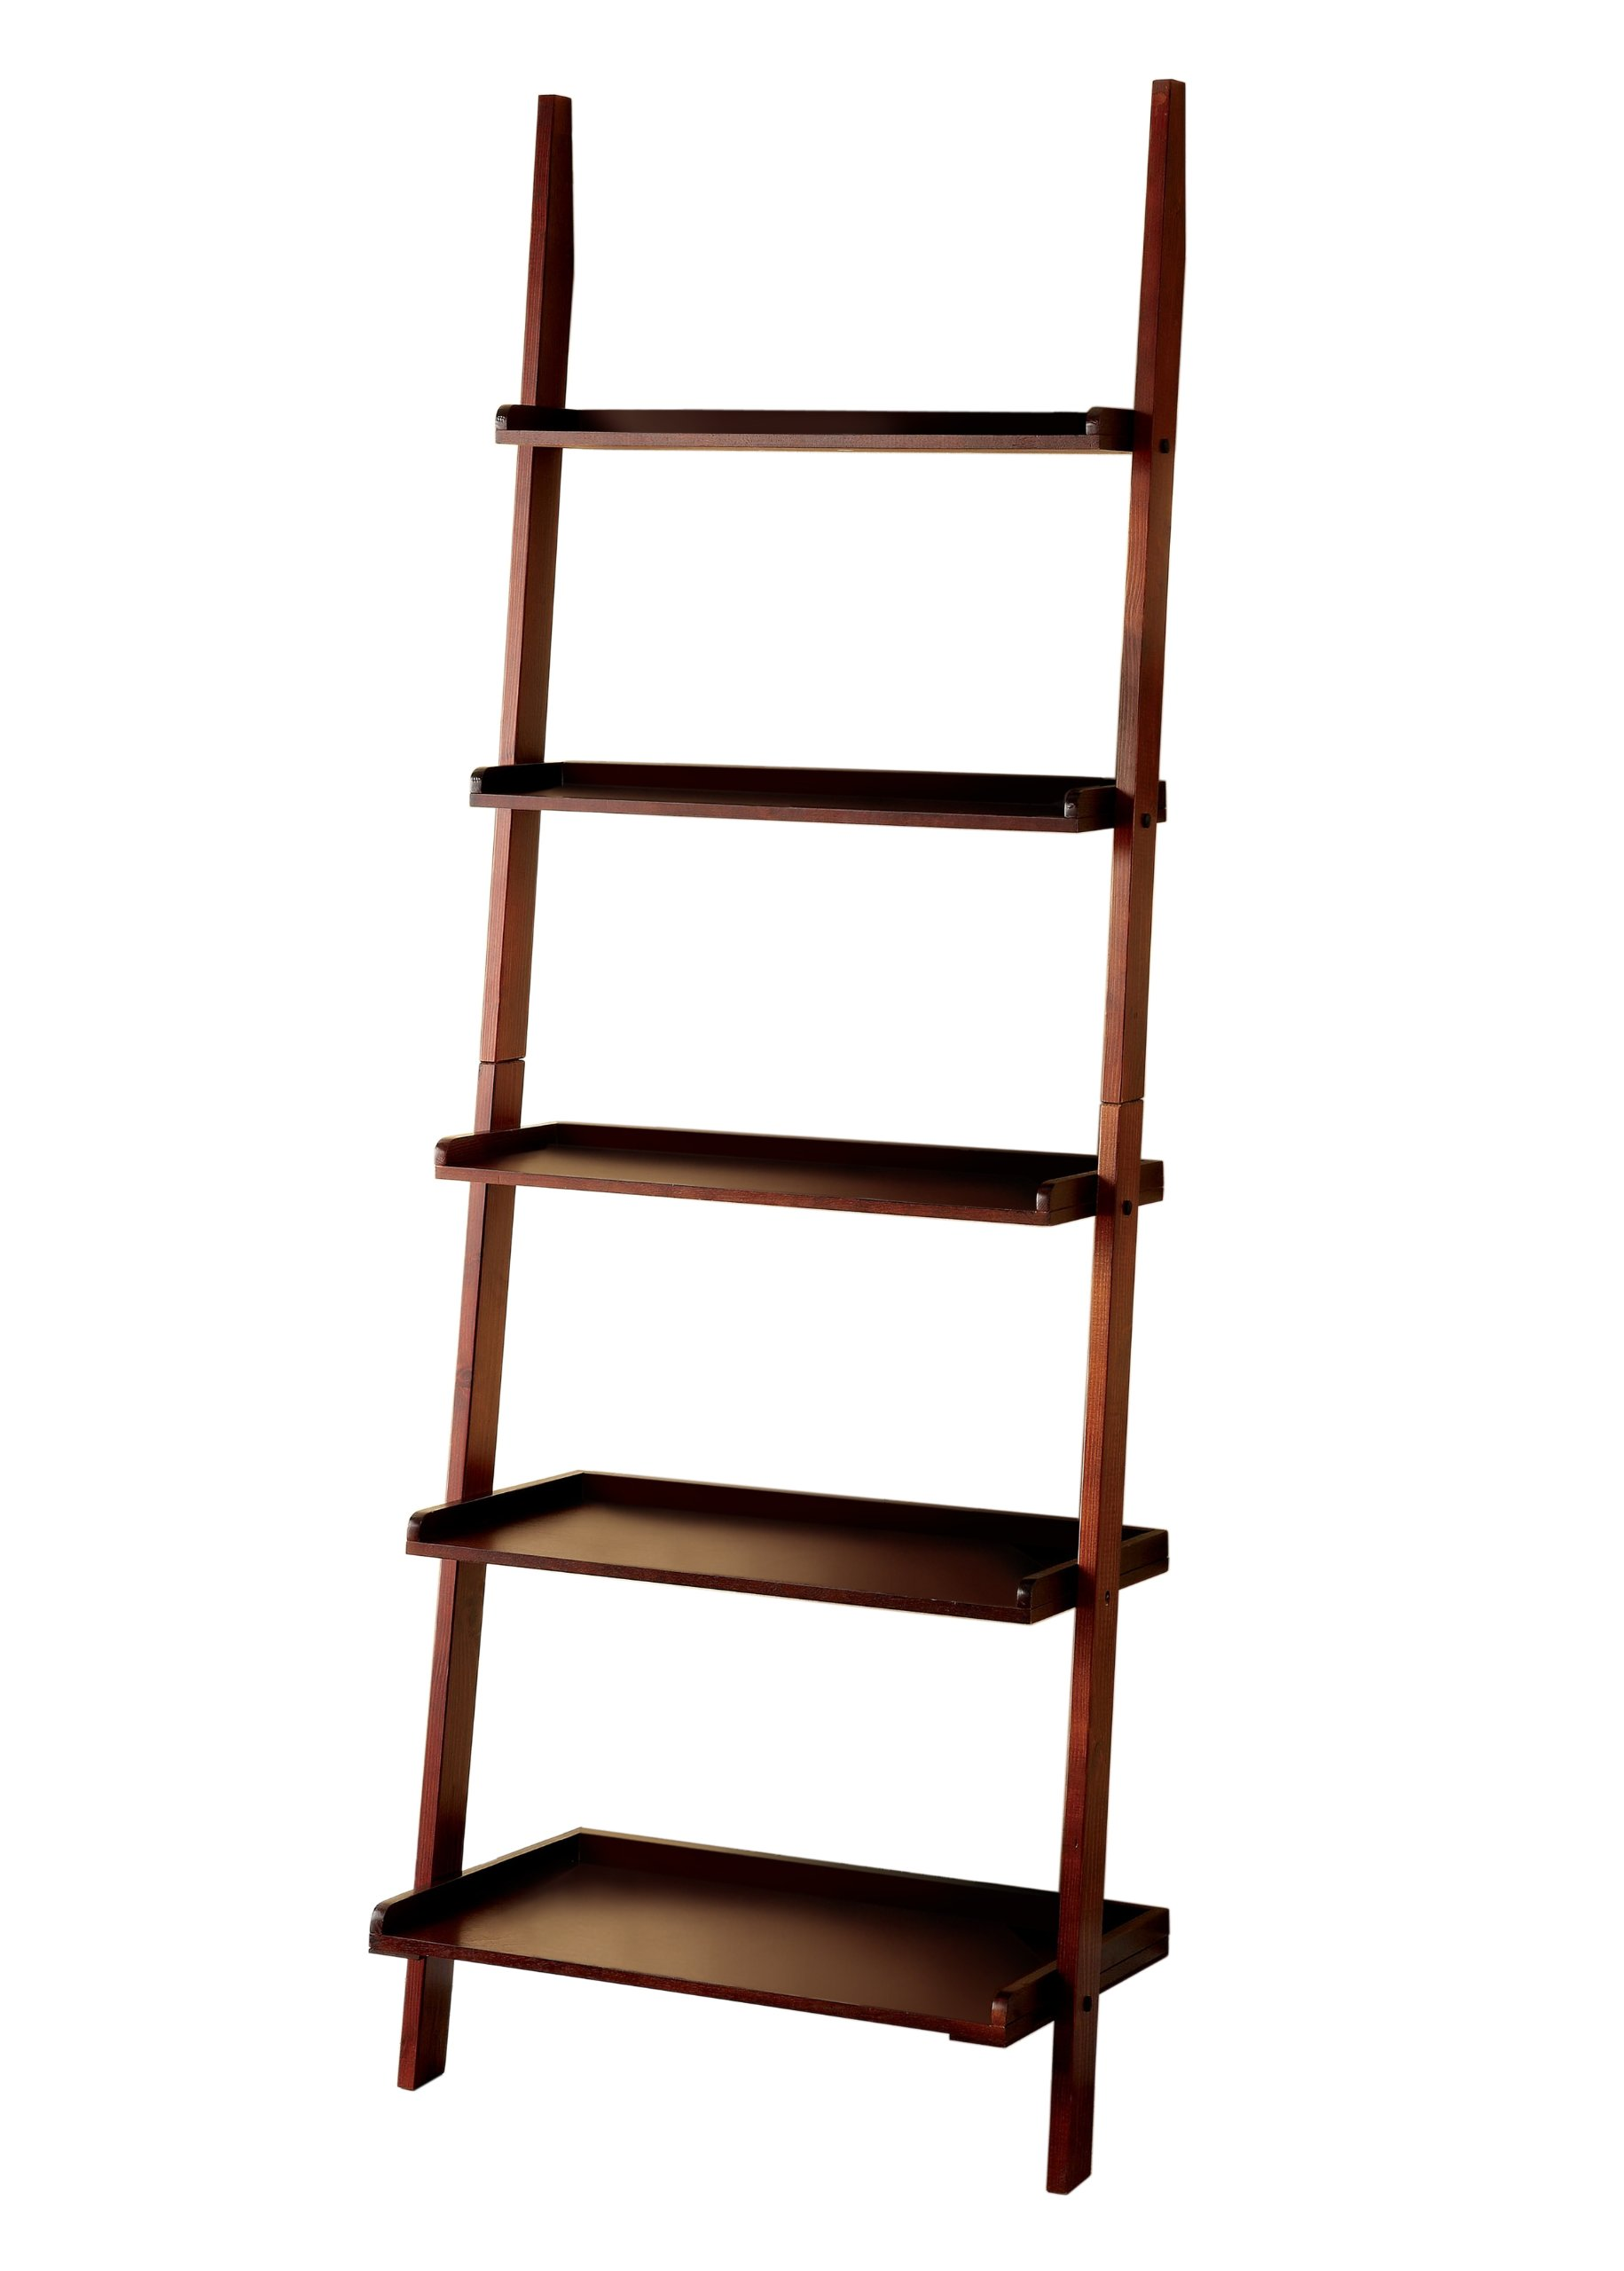 Furniture of America Klaudalie 5-Tier Ladder Style Bookshelf, Cherry